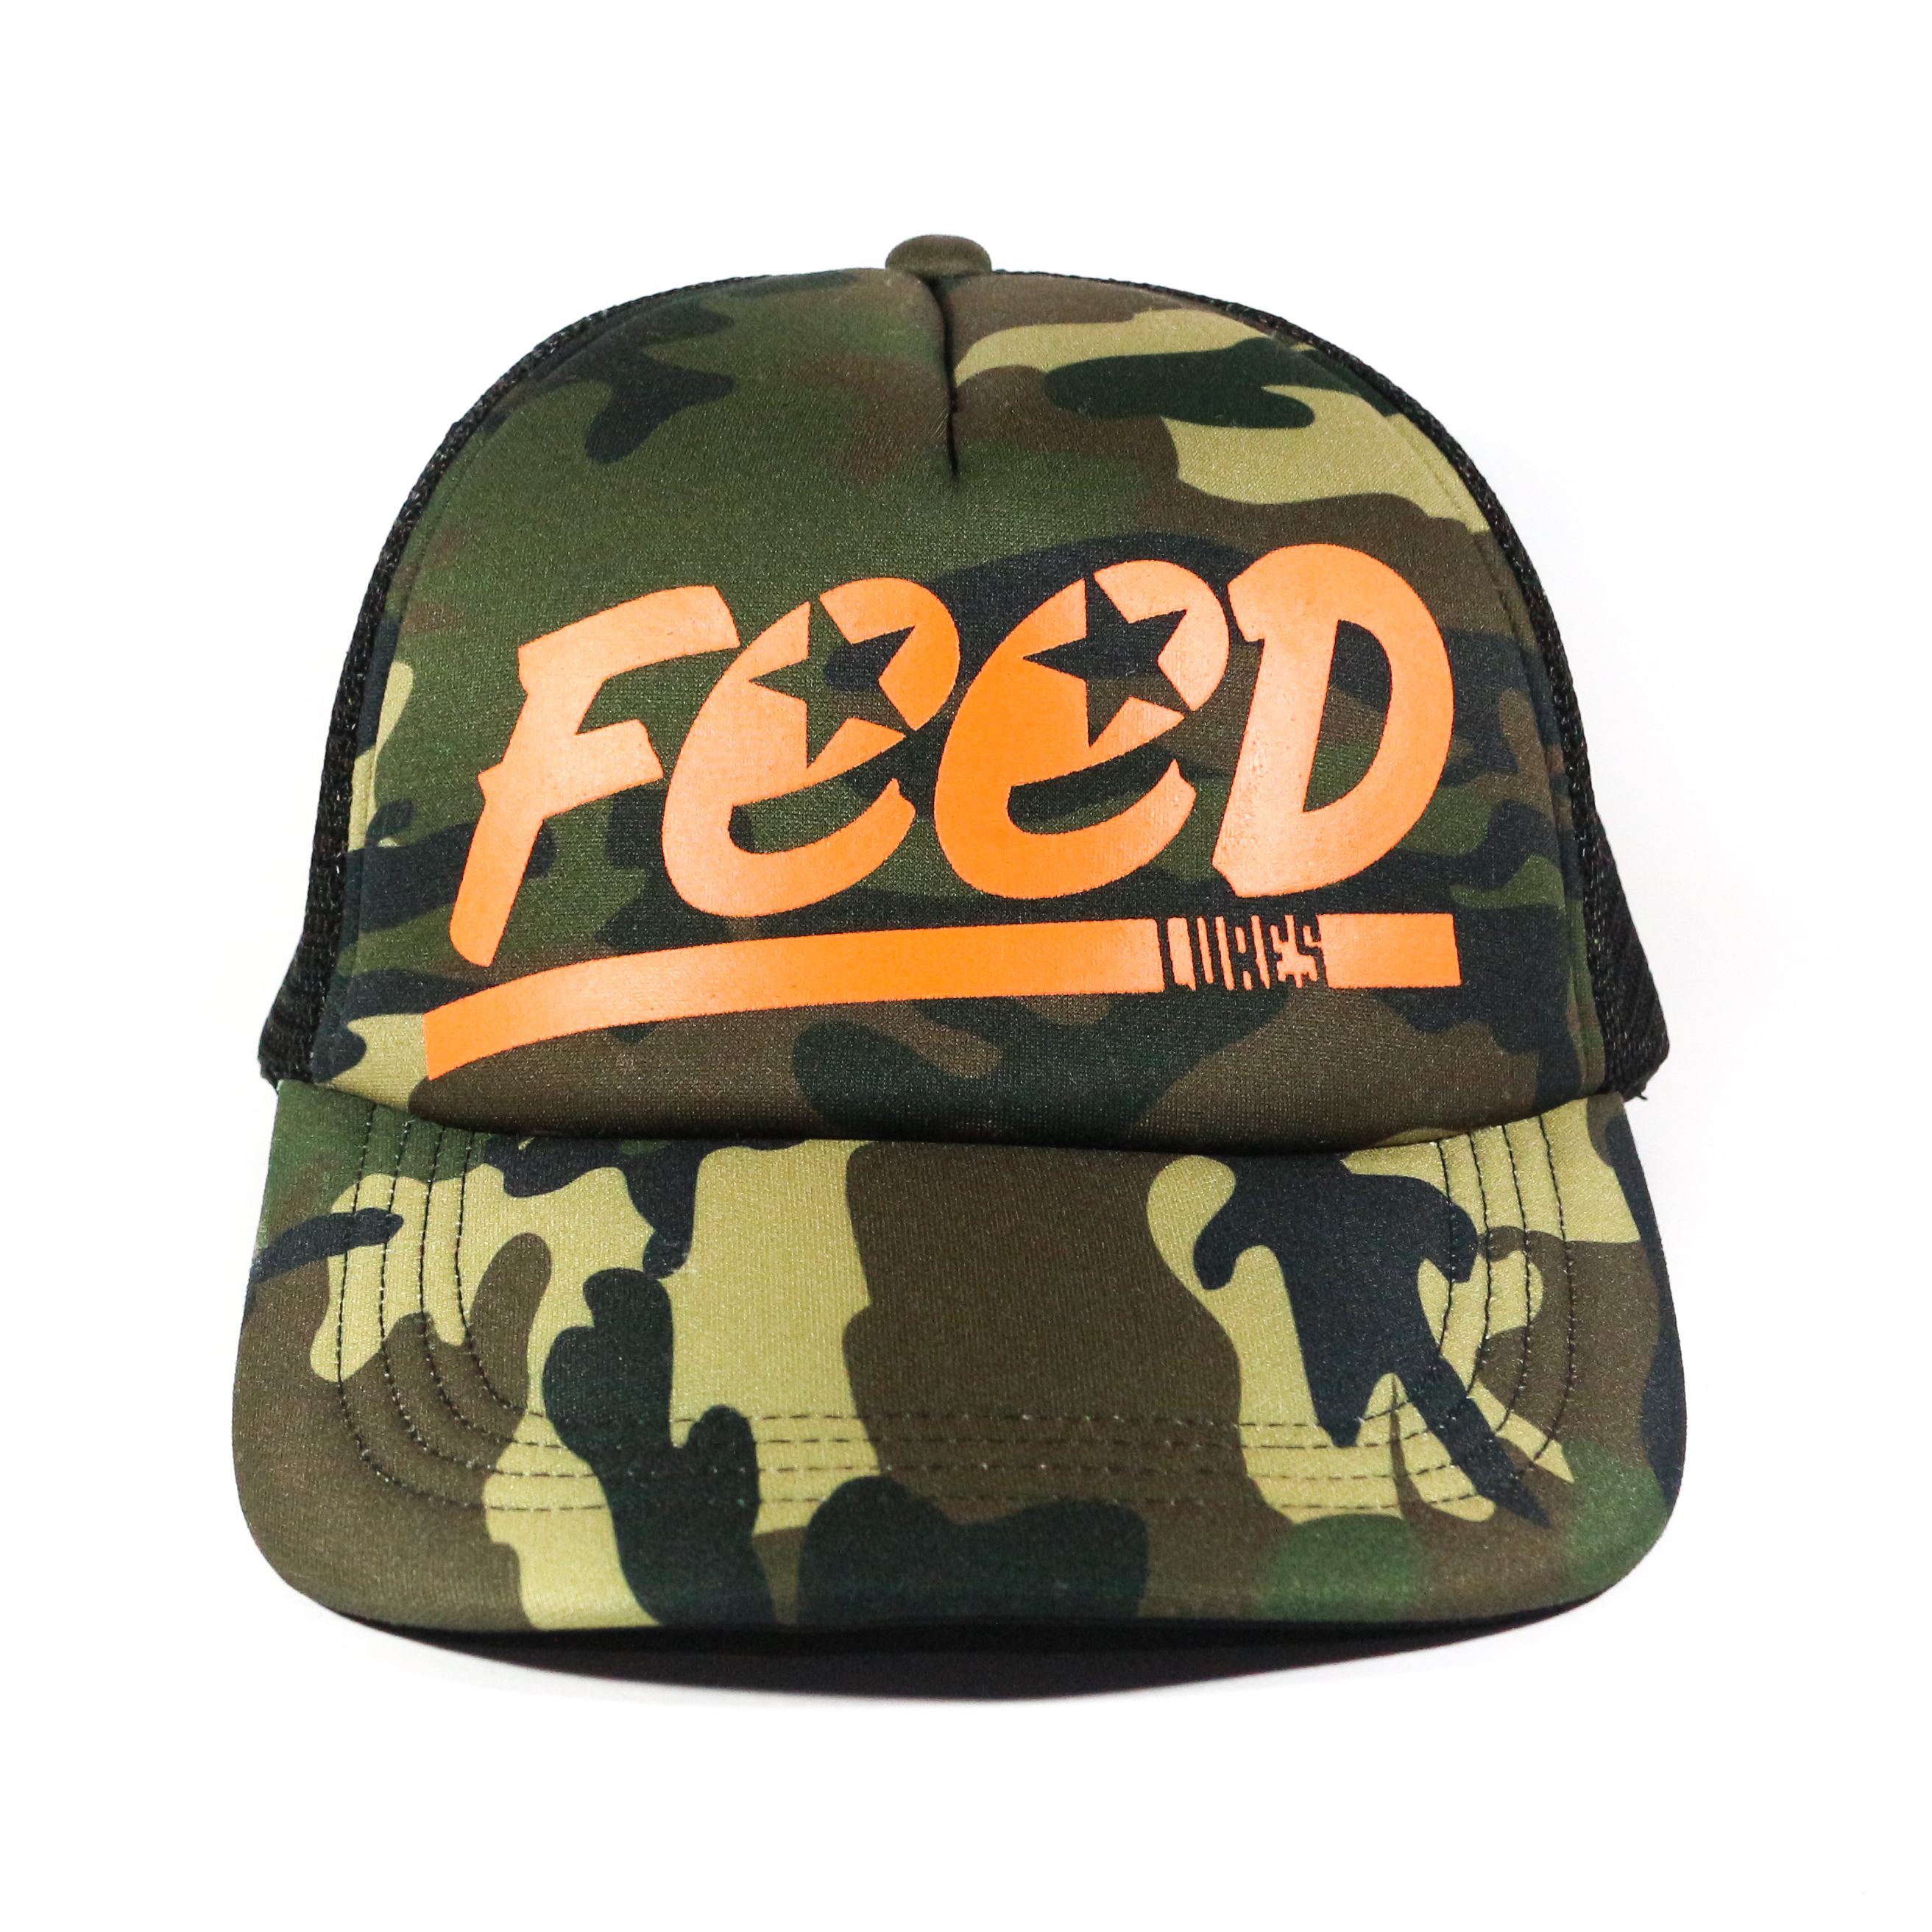 Feed Lures Cap Jungle Mesh Cap Free Size Brown Camo (0074)